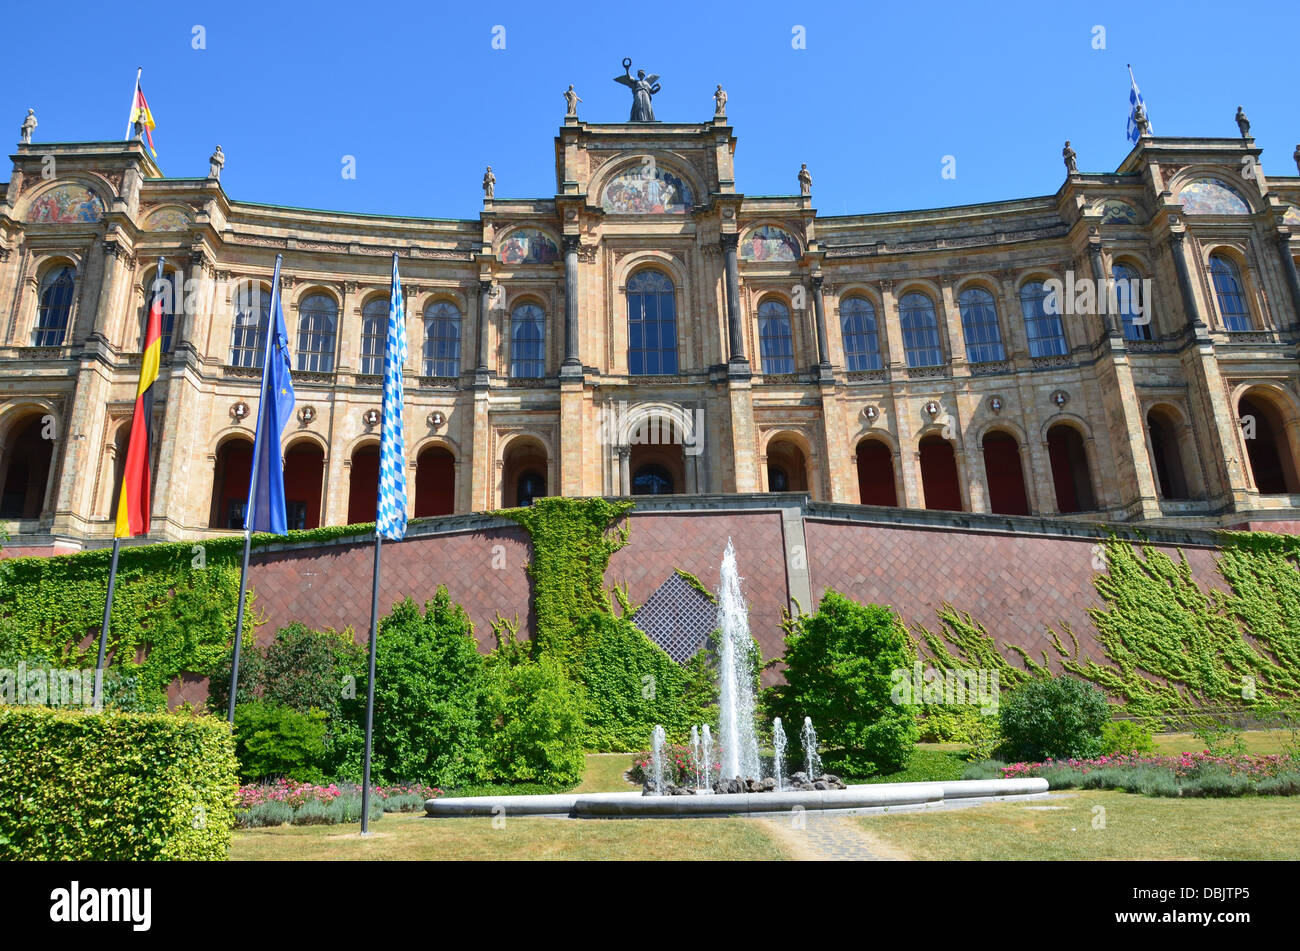 Munich  Bavarian Landtag (State Parliament) Bavarian flag German flag European flag - Stock Image